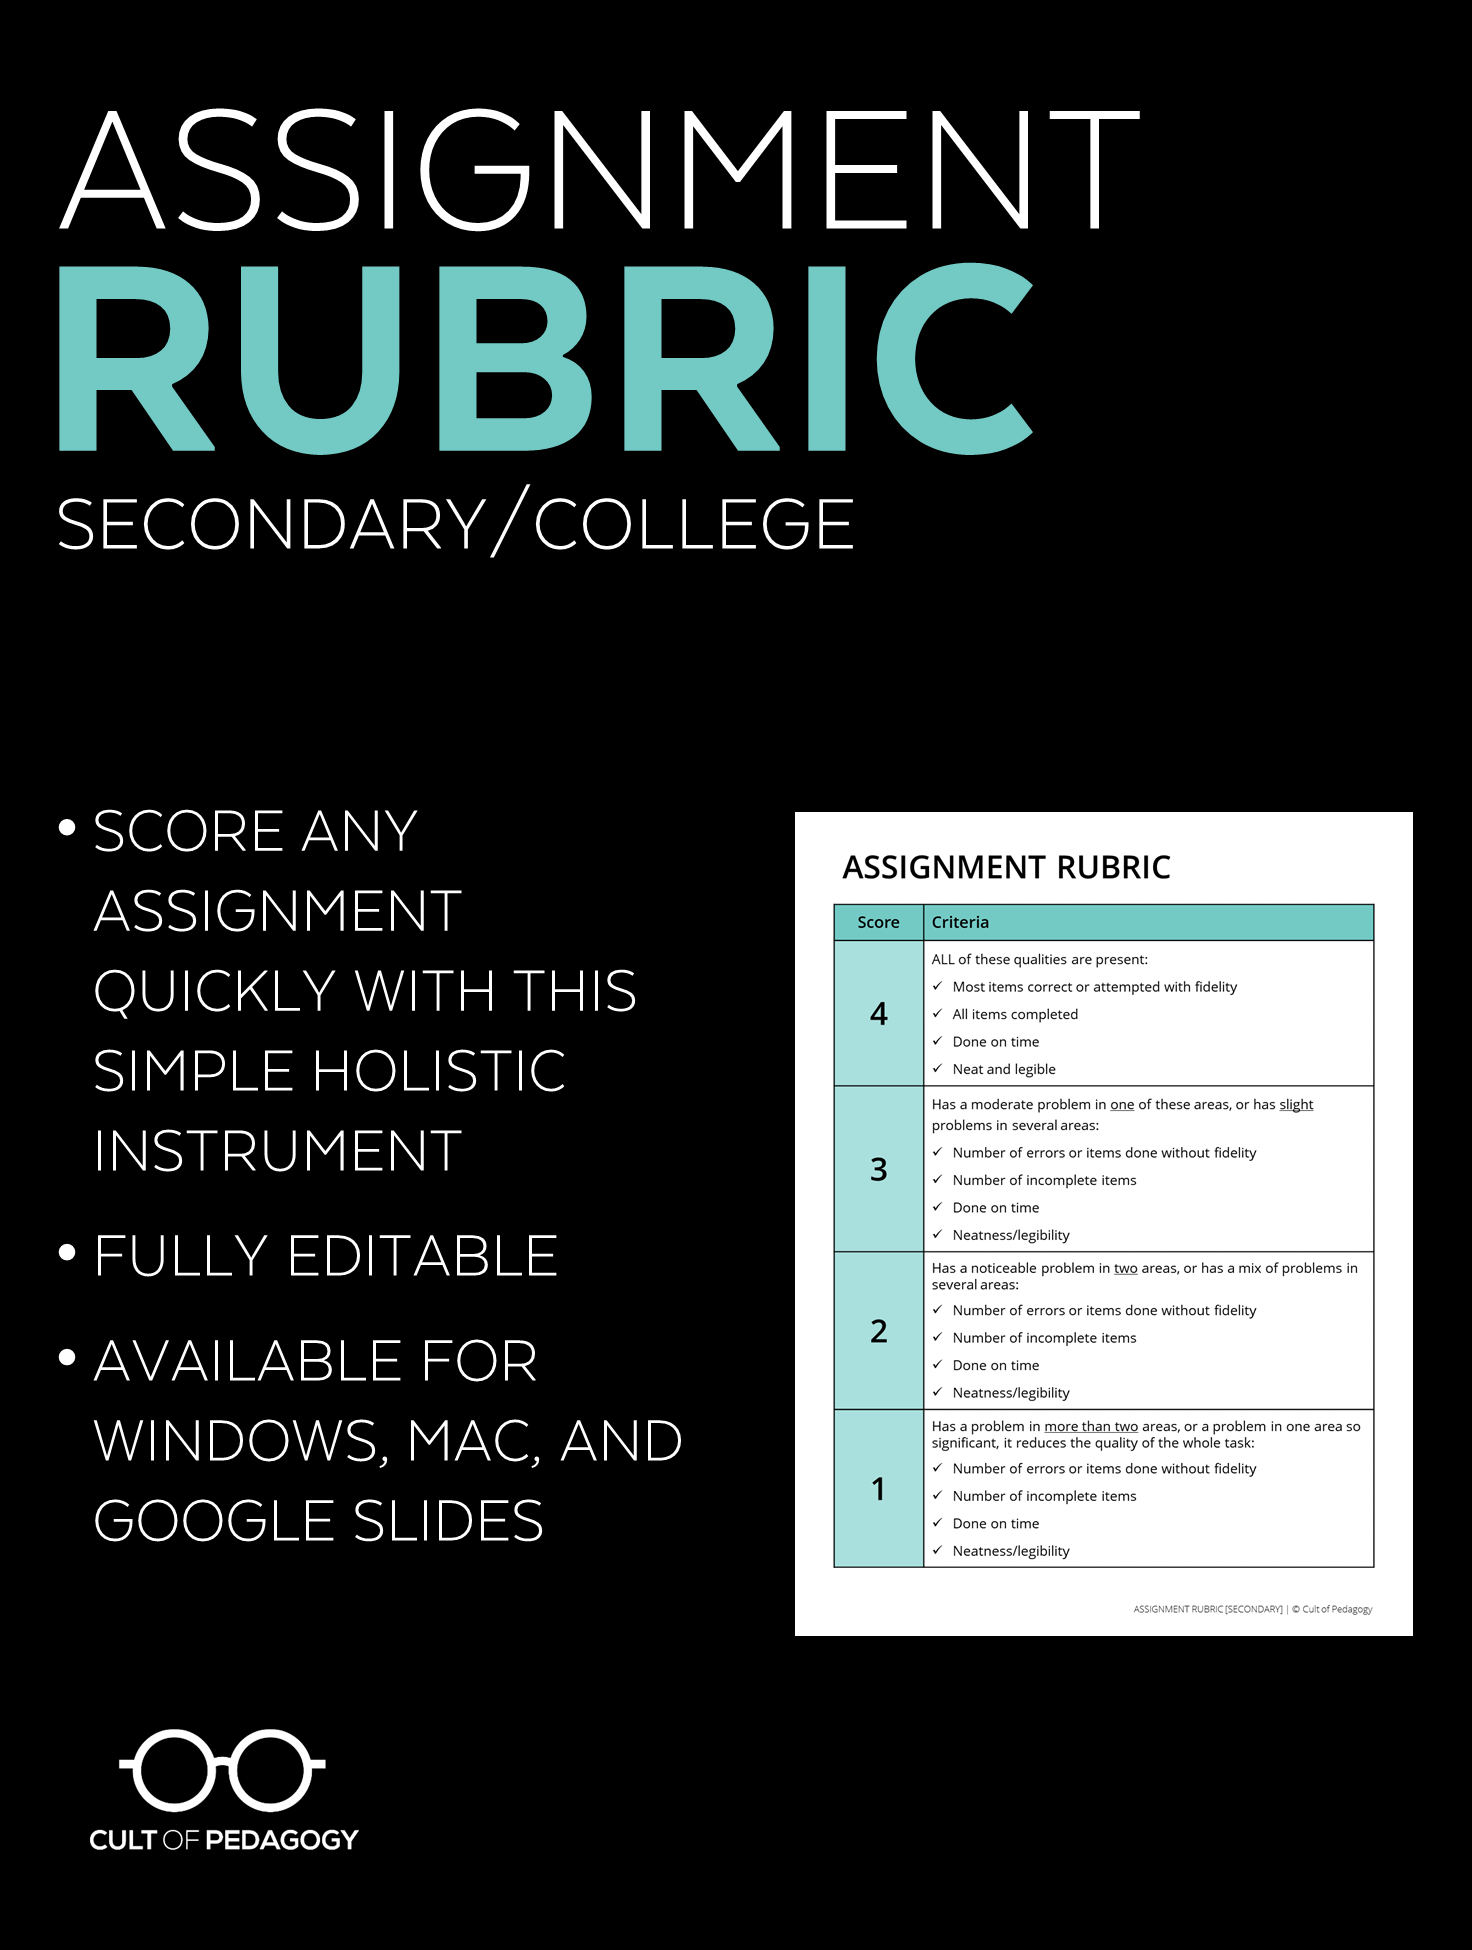 Assignment Rubric Secondarycollege Level  Classroom Materials On  Dccdebpng